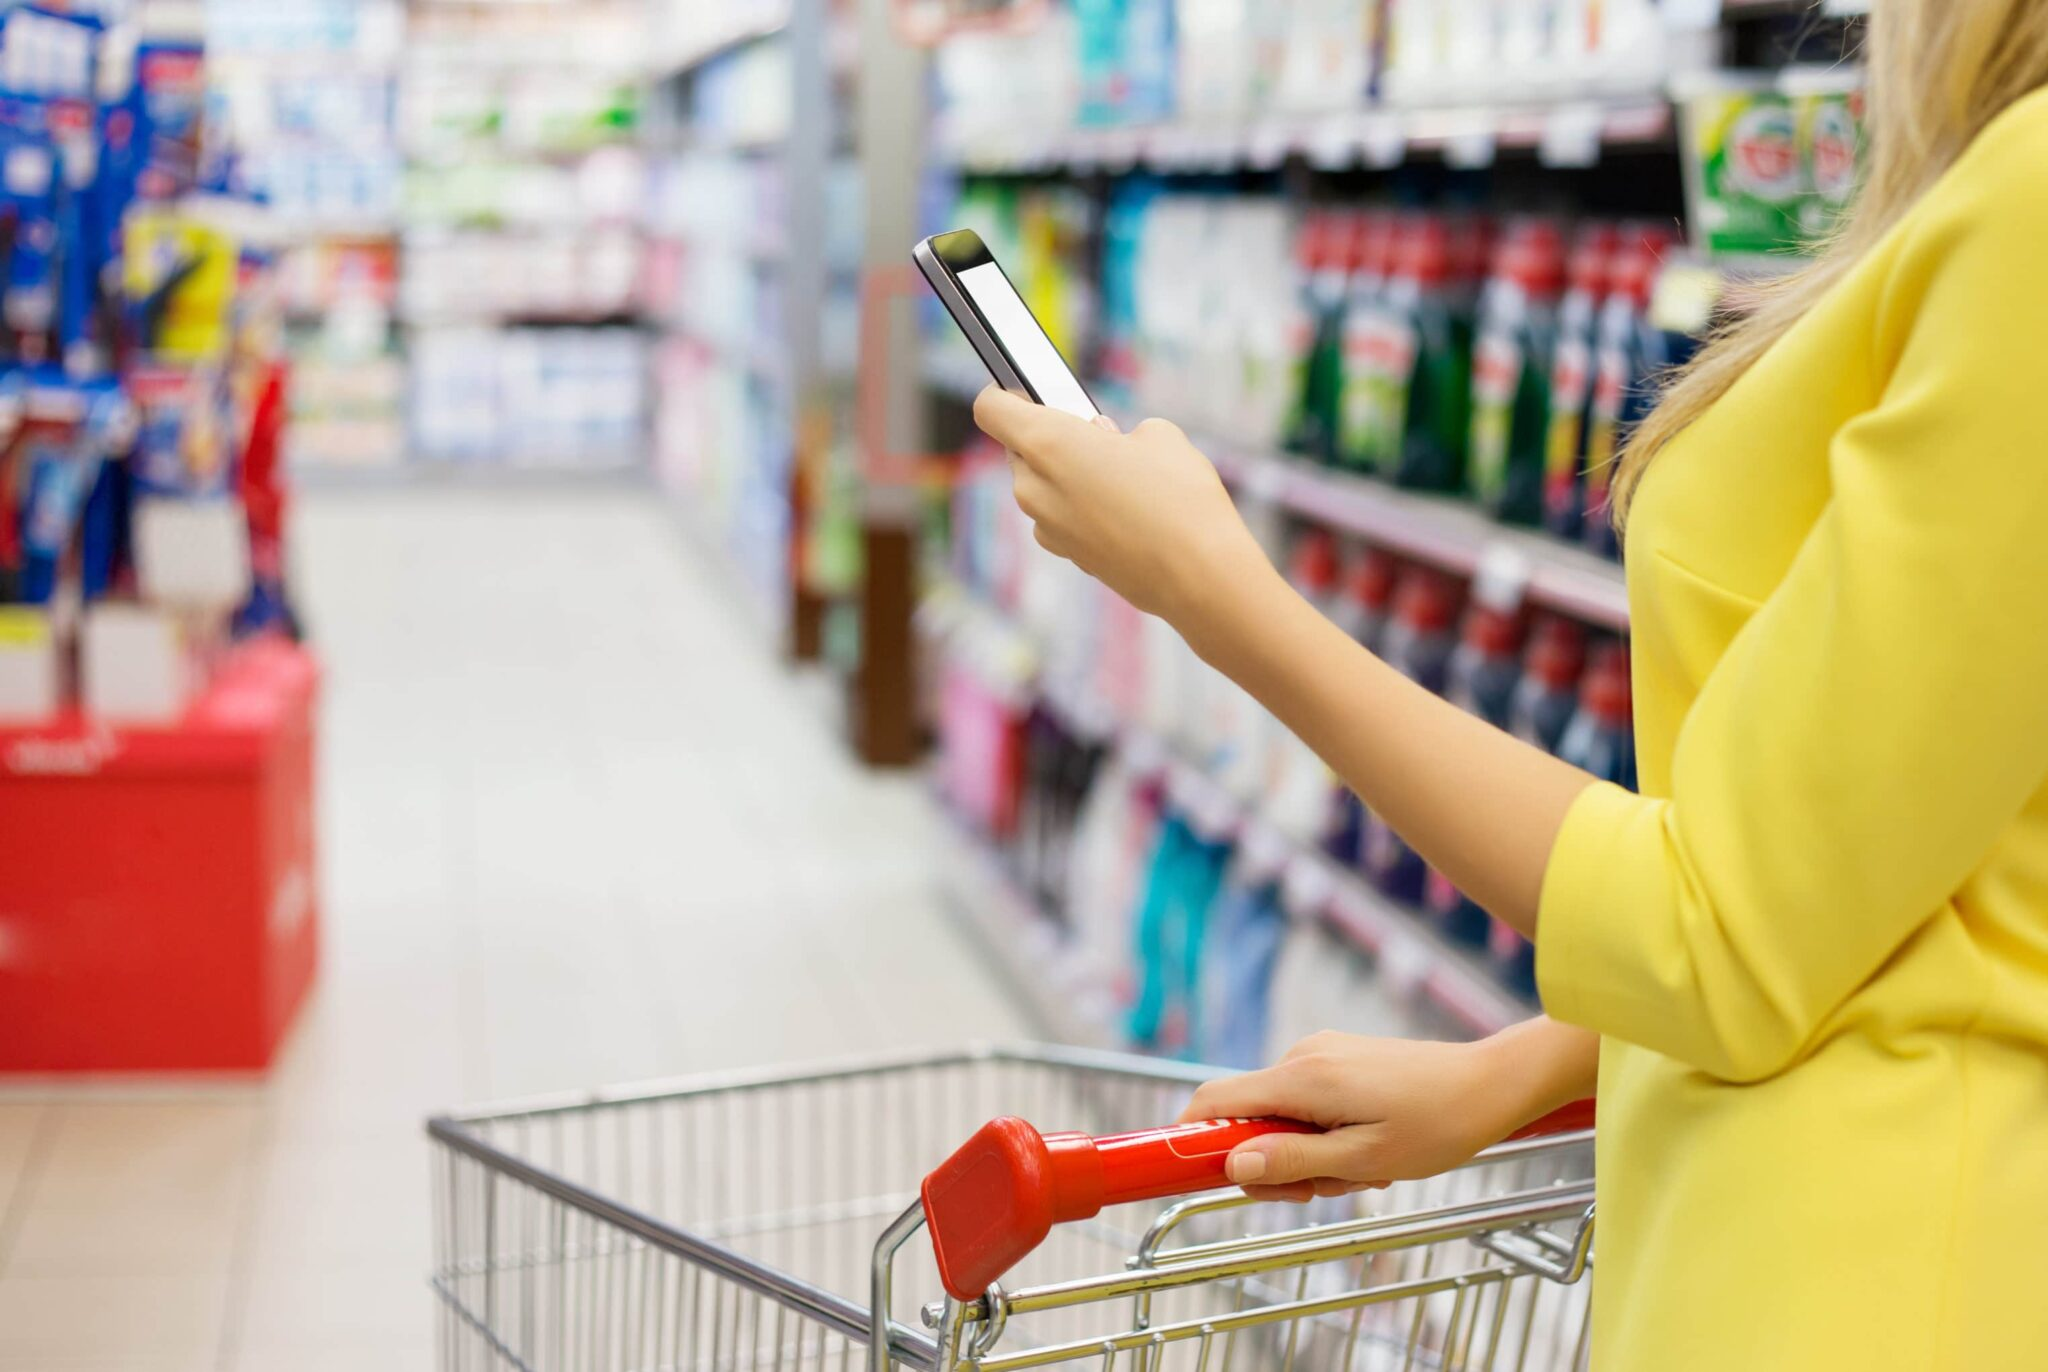 Woman in a yellow shirt looks at her phone in a deparrtment store aisle.